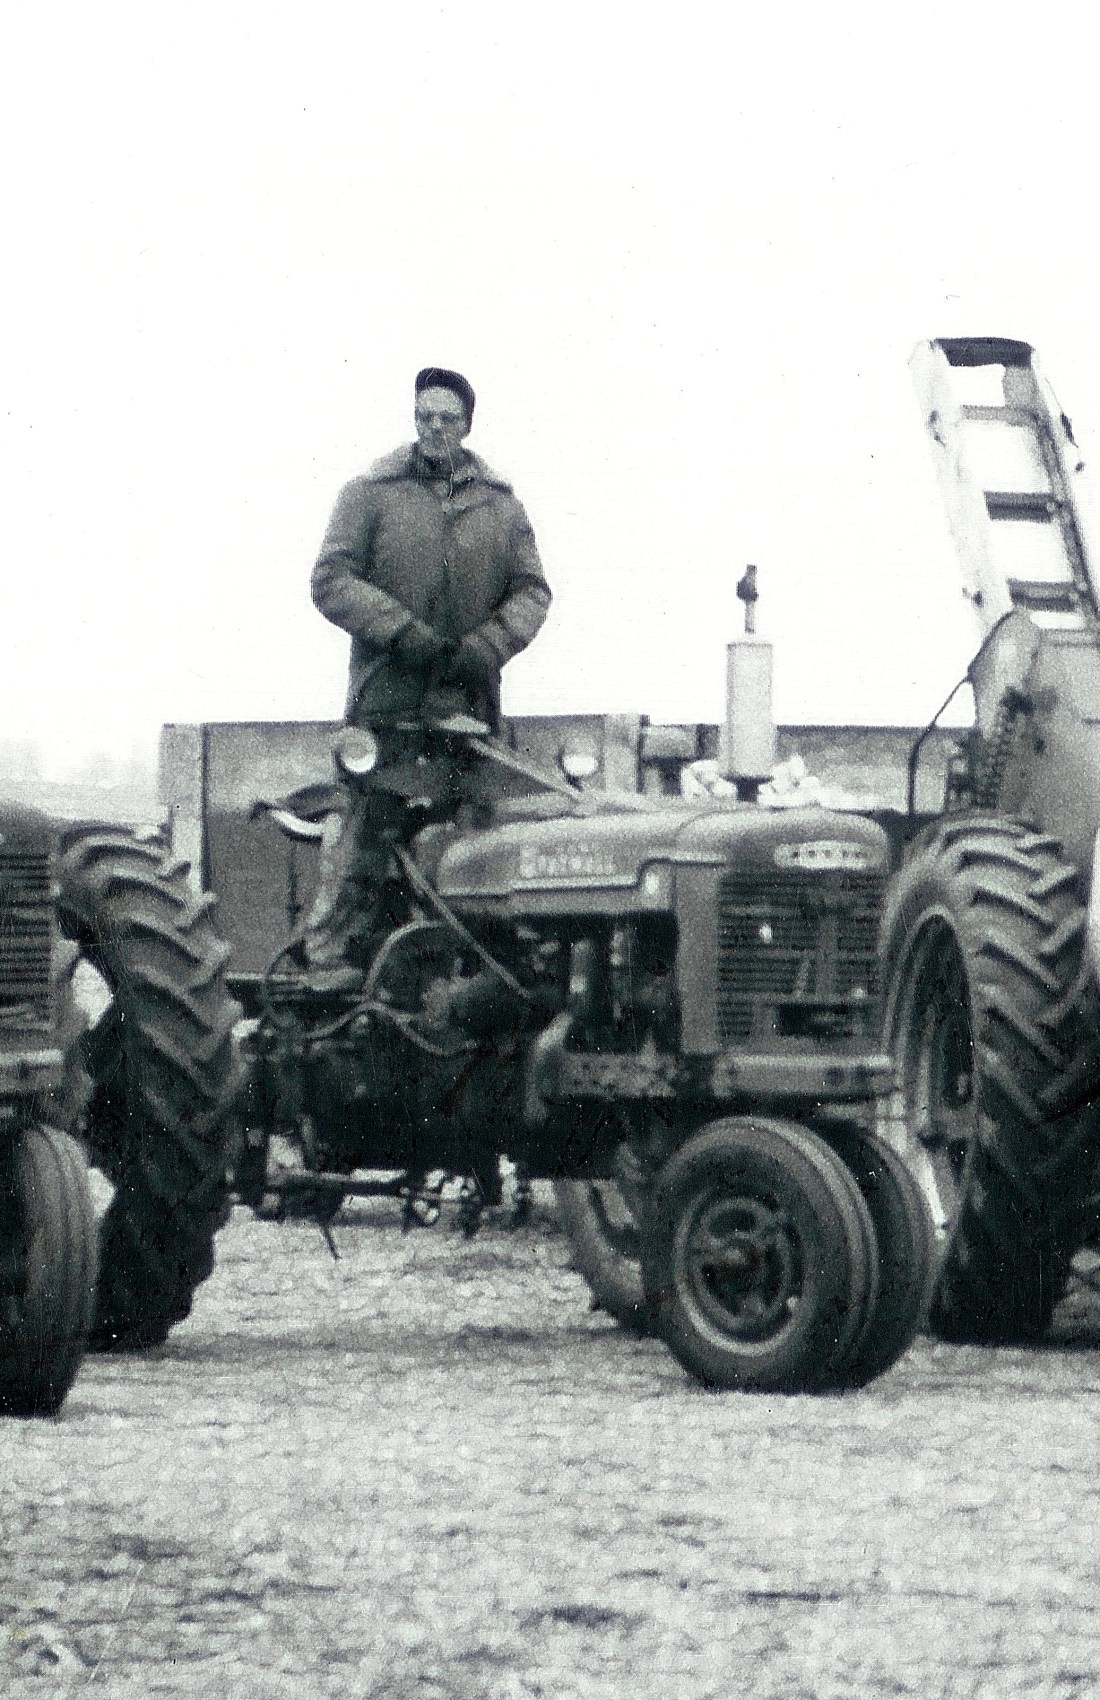 #98.1=Closeup of Russ on tractor, 1962